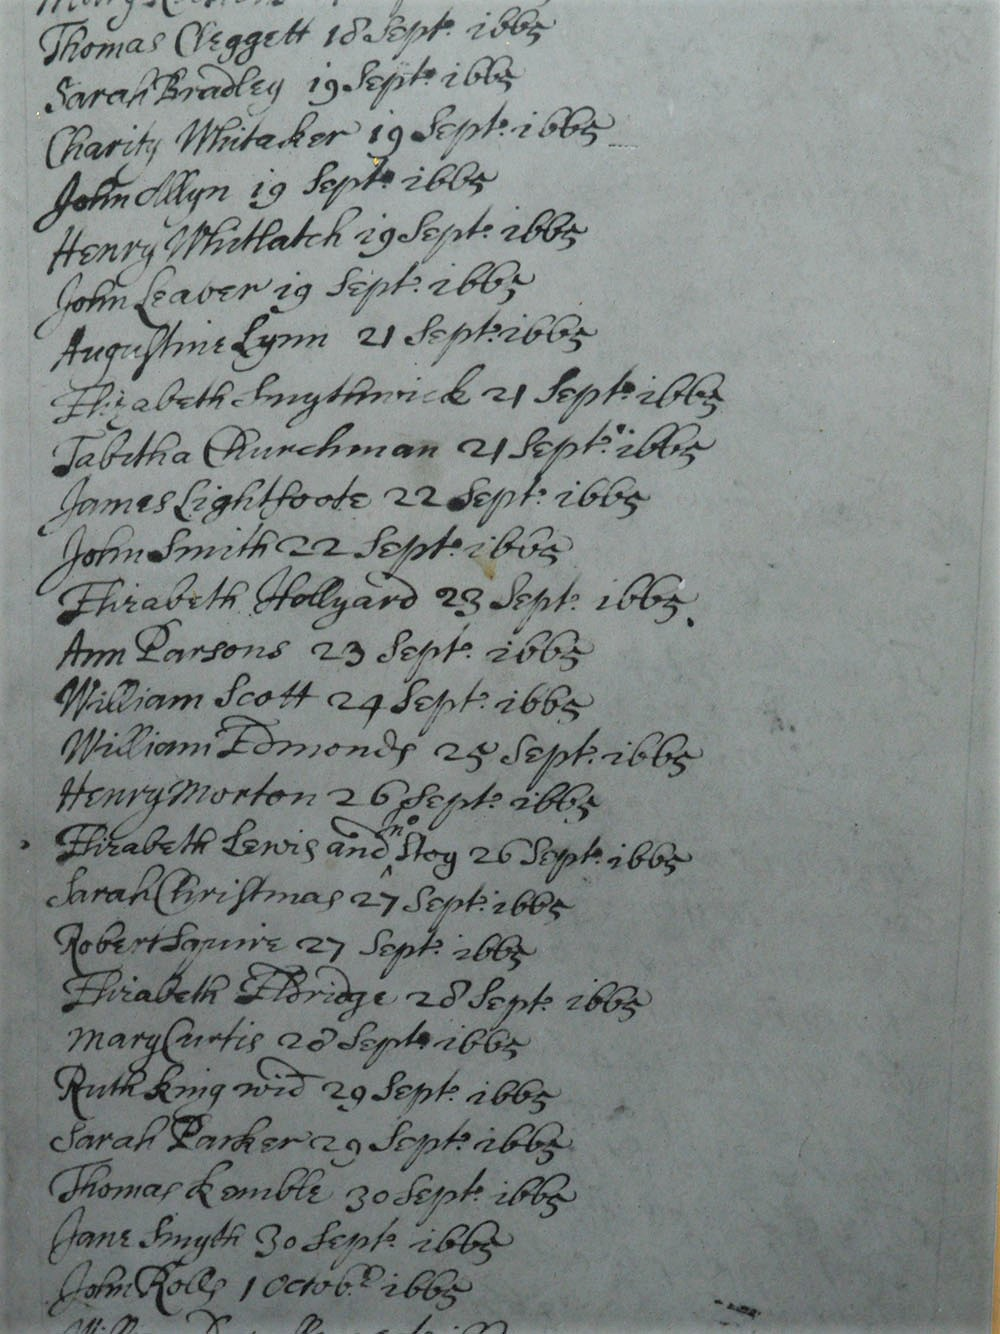 A handwritten page from the 1535 baptism register of St James